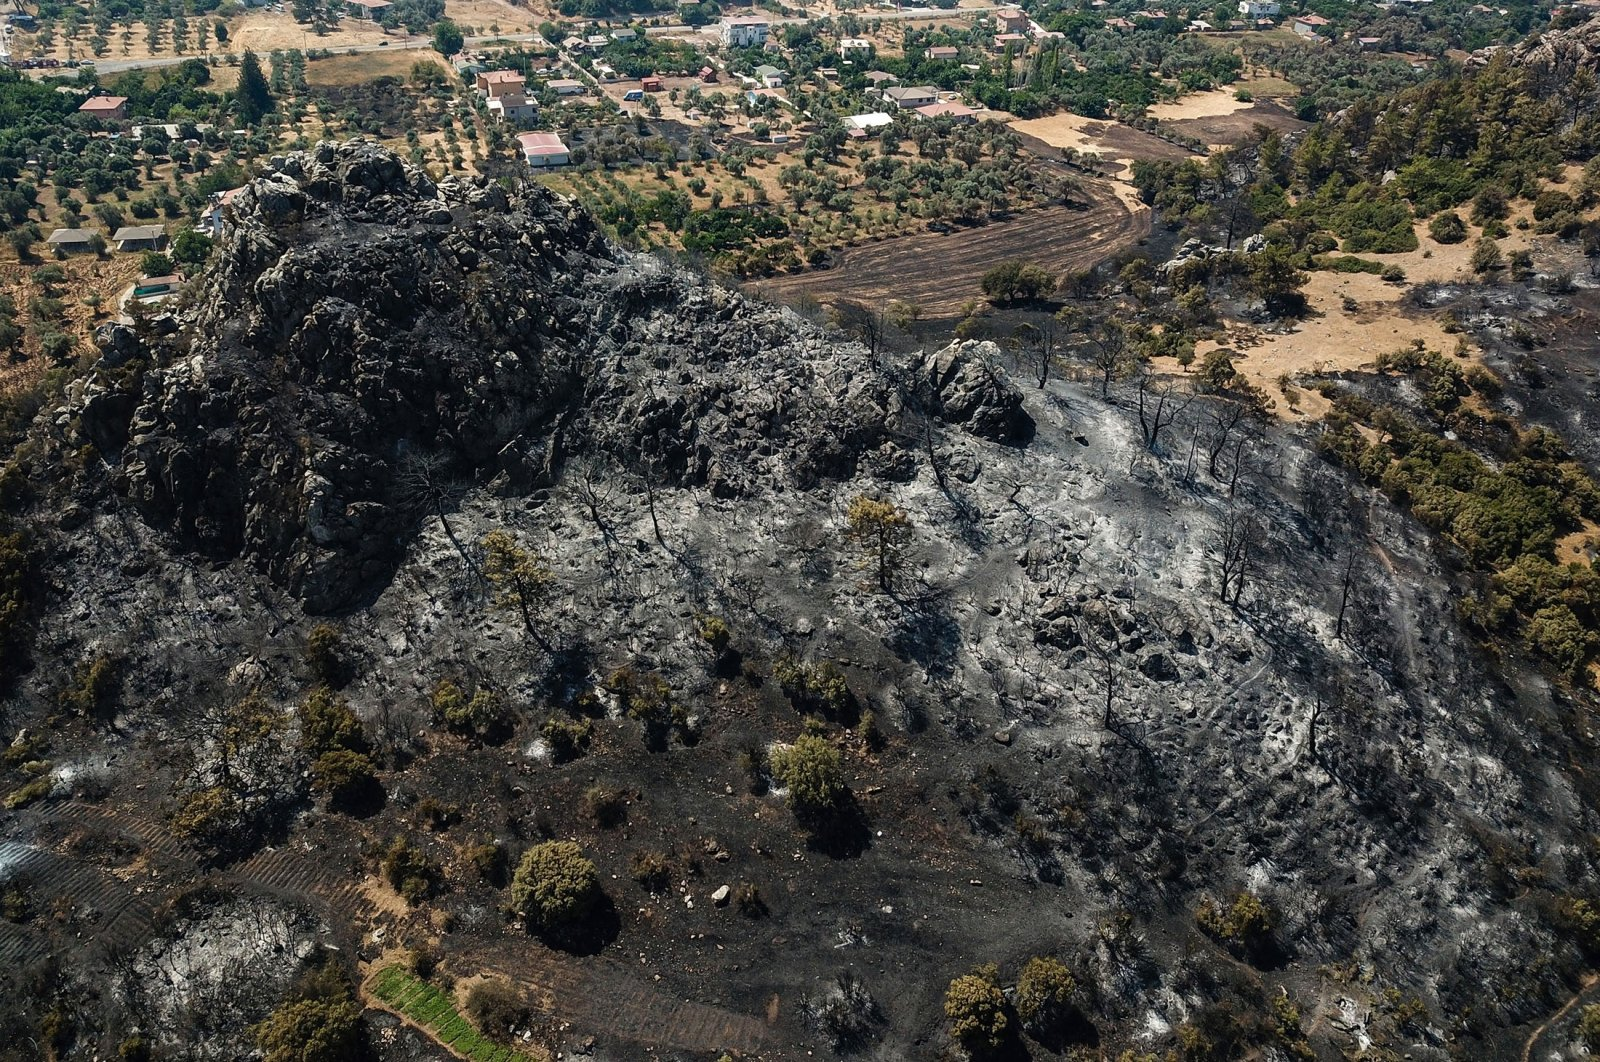 An aerial view shows aravaged area and burnt trees in the Marmaris district ofMuğla, Turkey, Aug. 3, 2021. (AFP Photo)